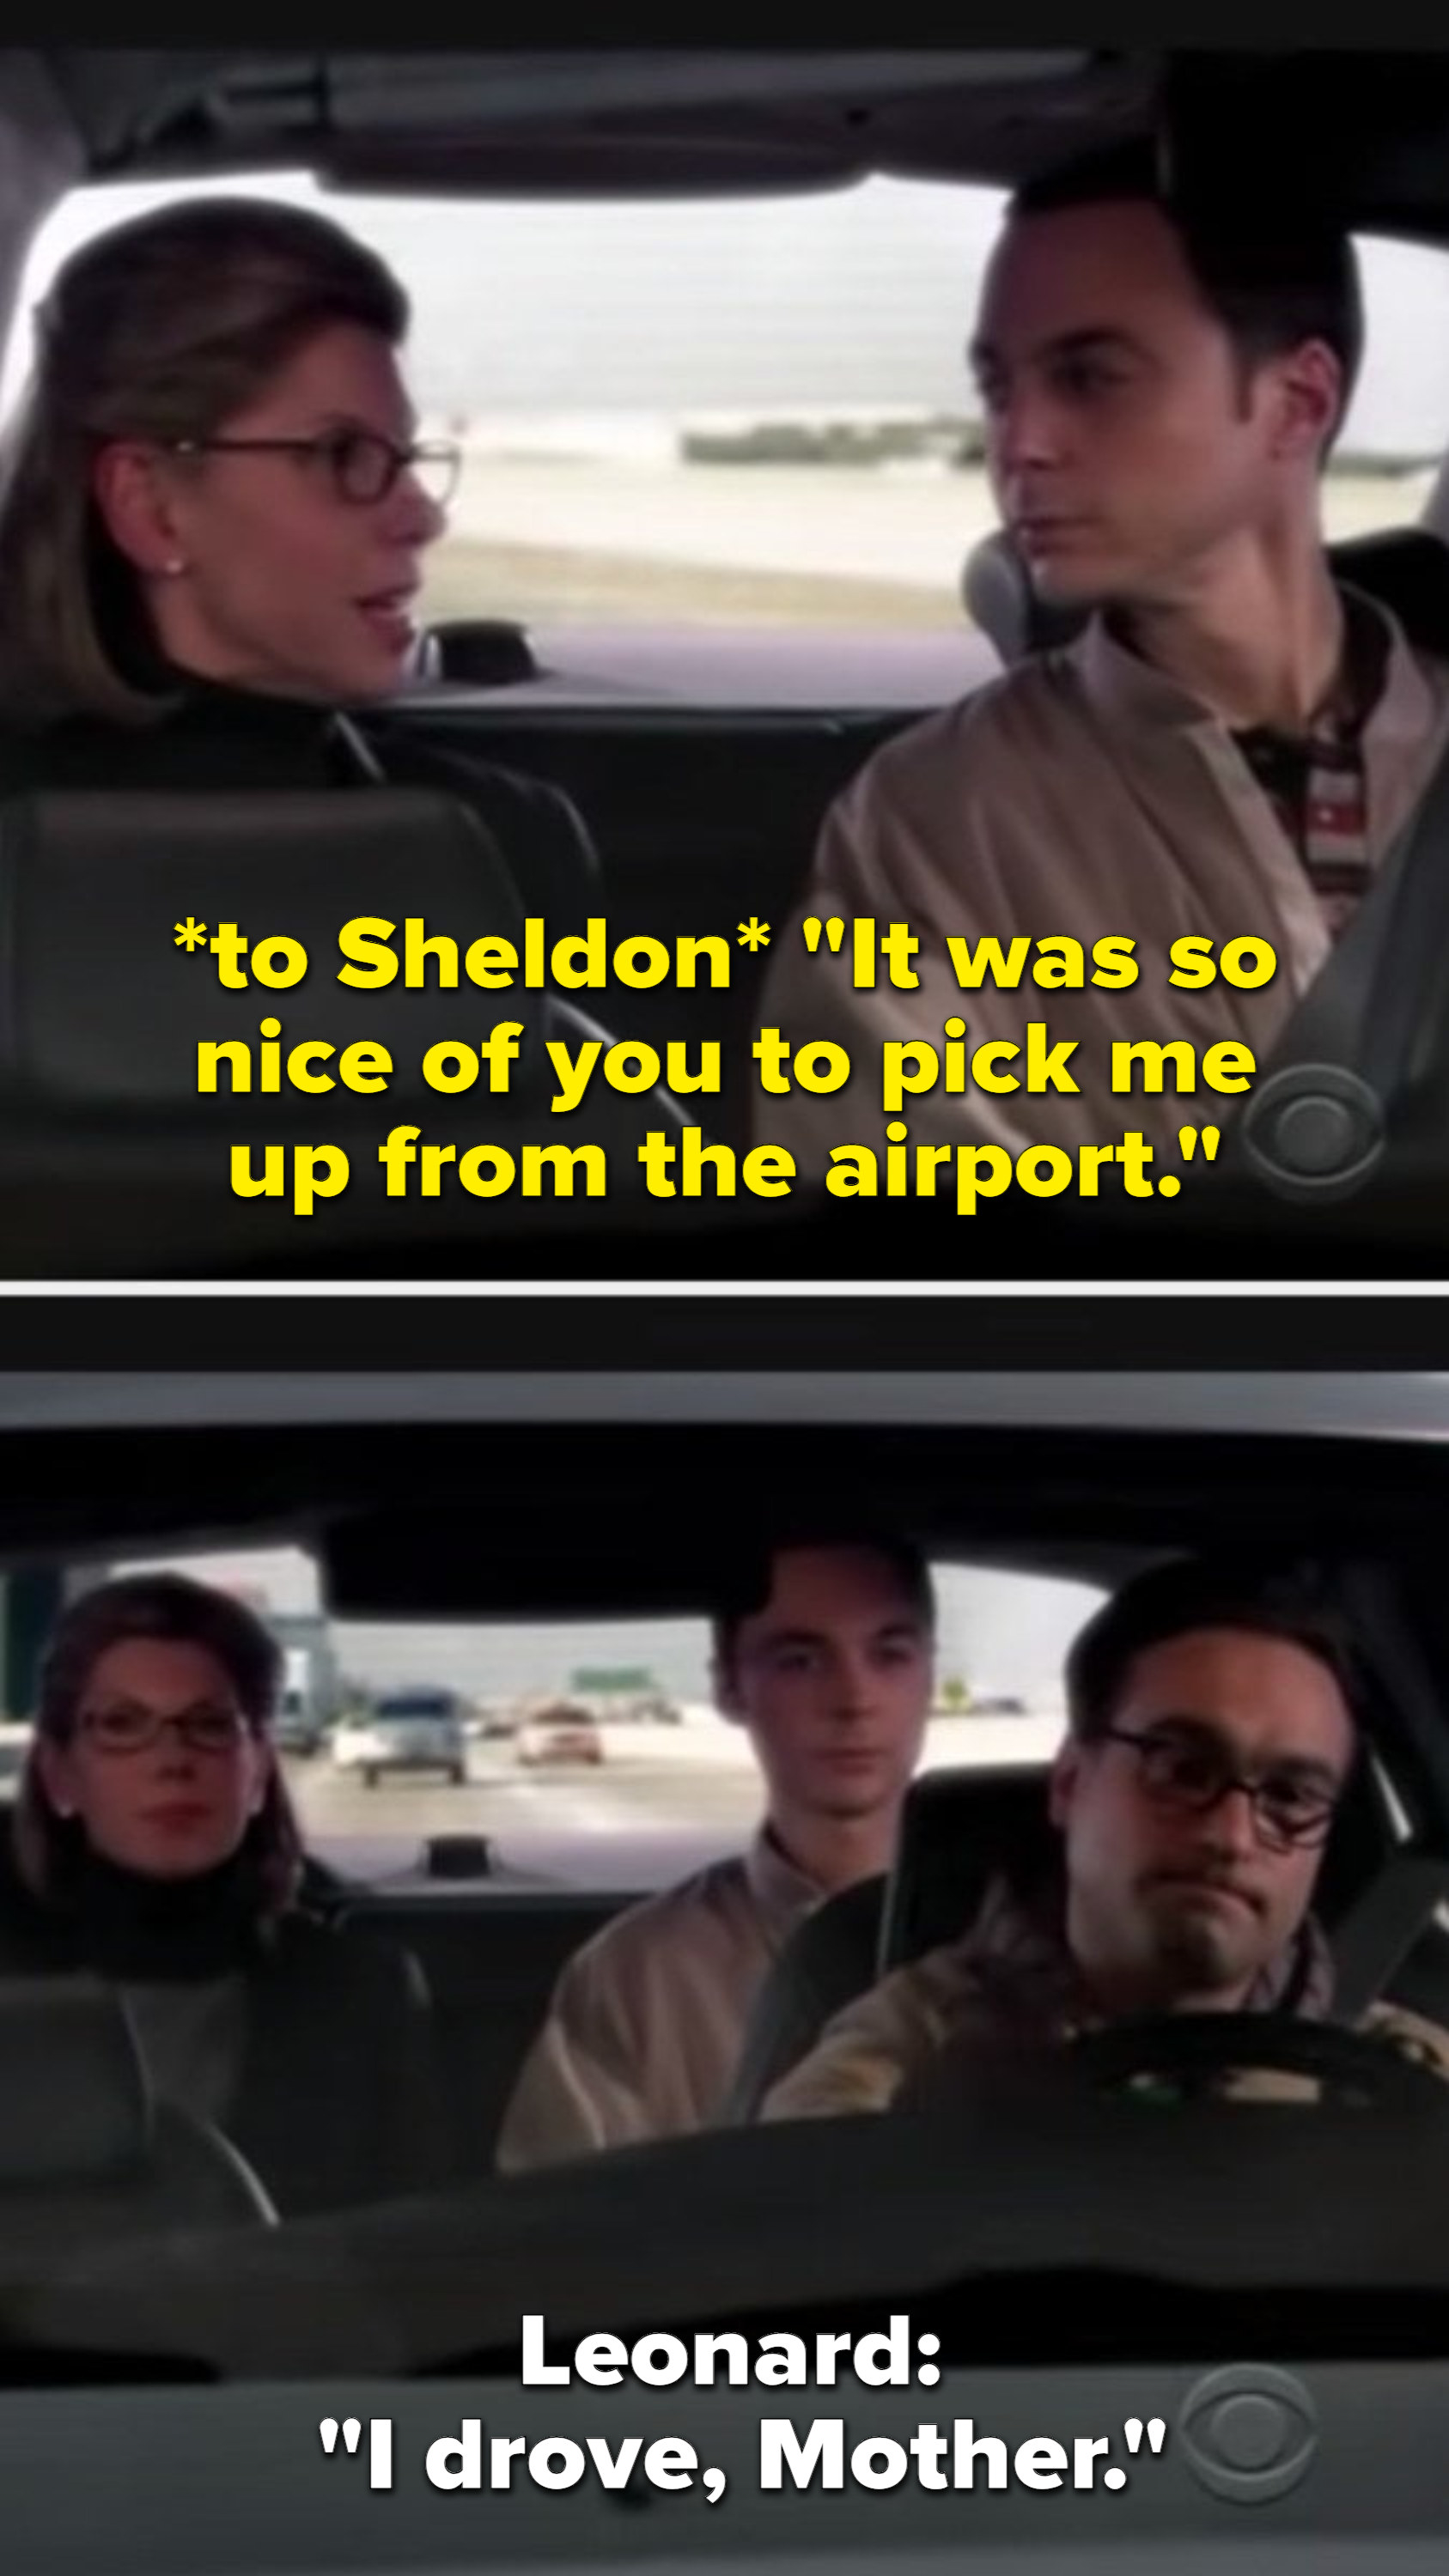 Leonard's mother thanking sheldon for picking her up from the airport, even though leonard drove